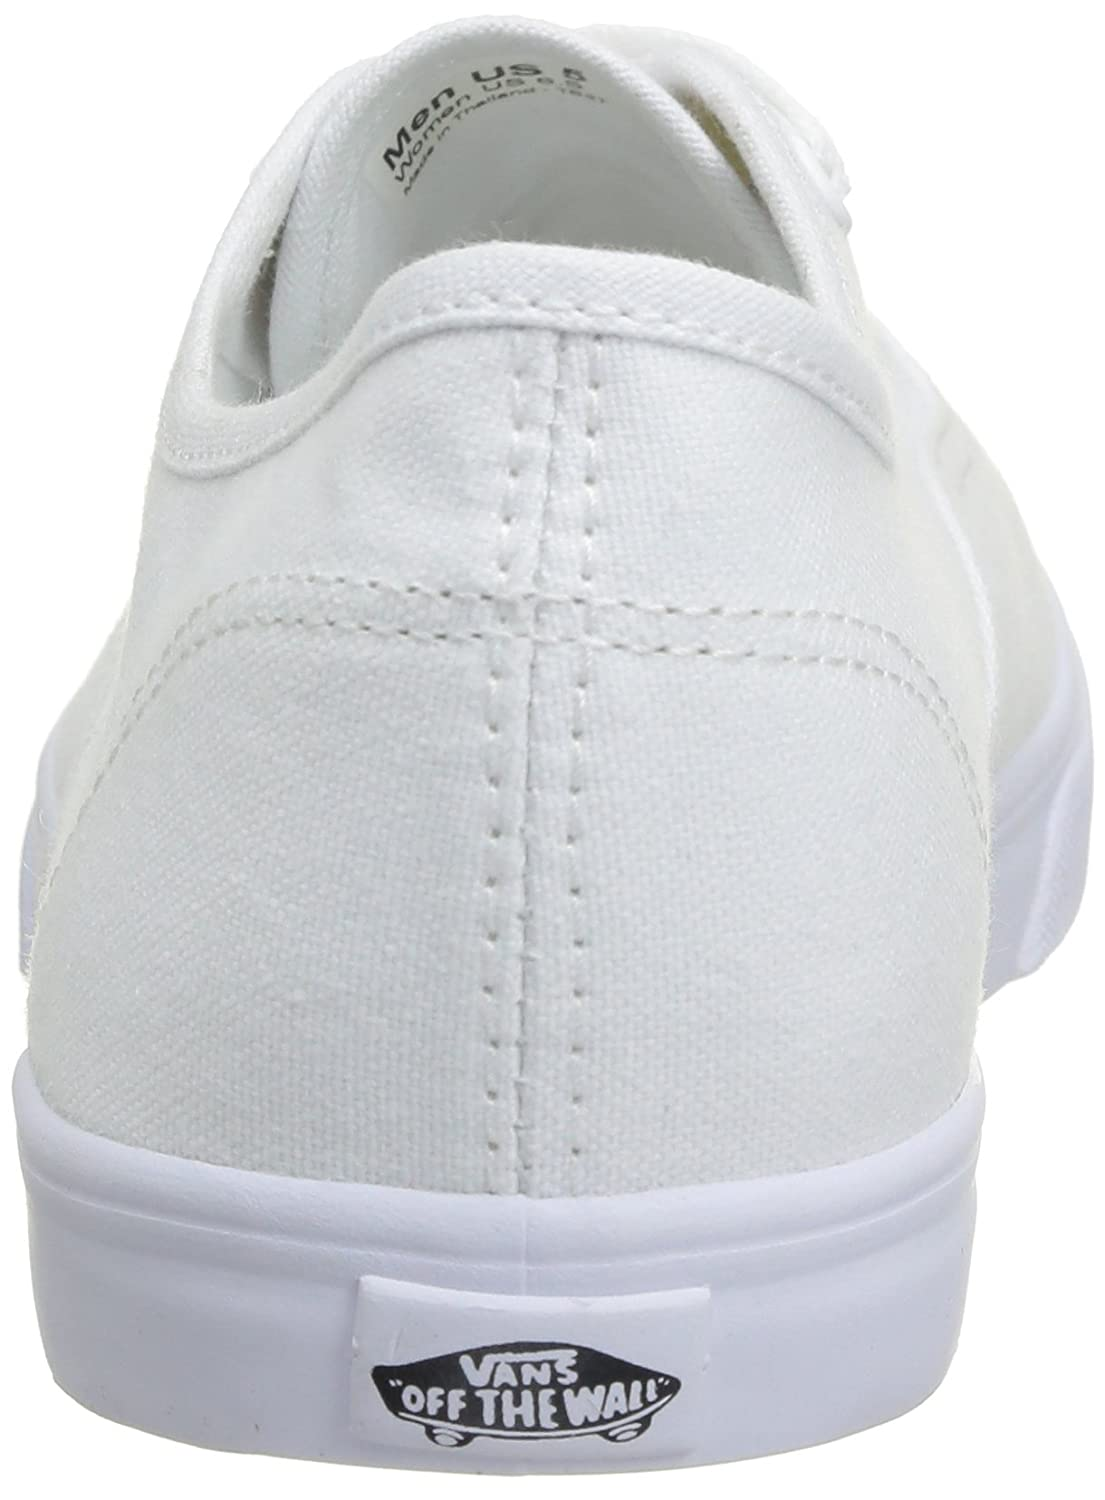 Vans 5.5 Authentic B001FYJ5HE 4 US Men / 5.5 Vans US Women|True White/True White e10436